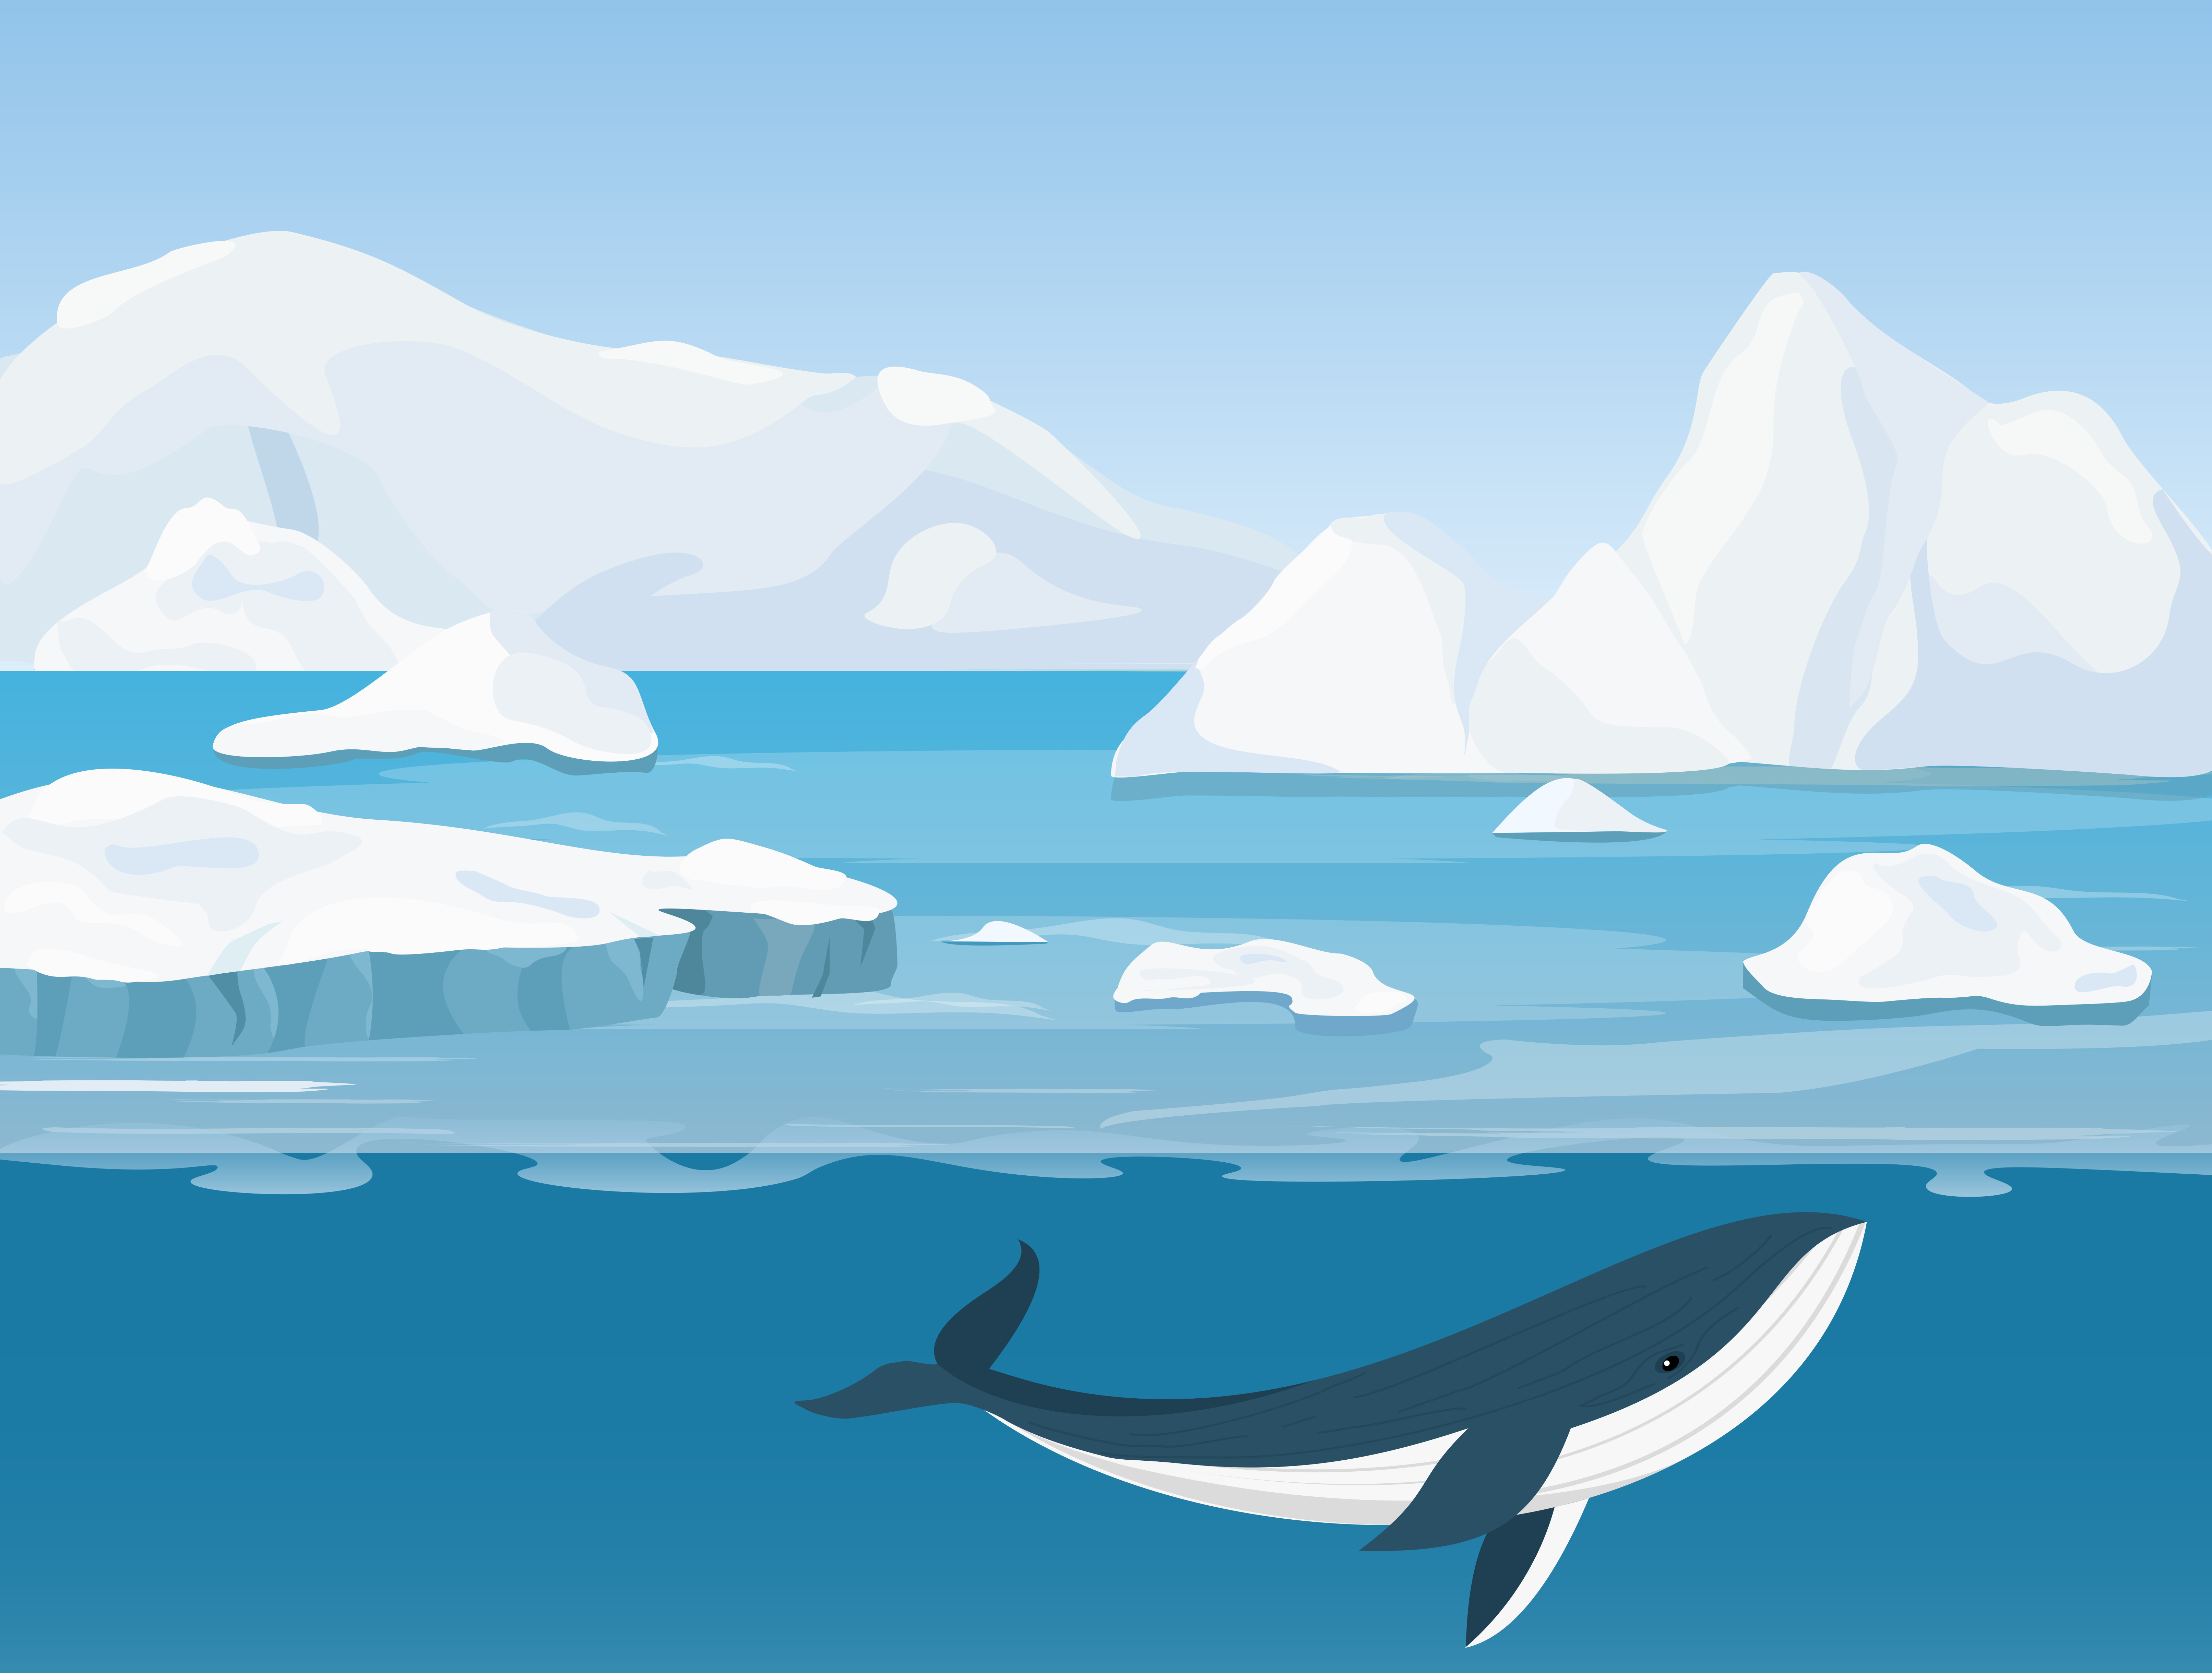 Geography Arctic Ocean Level 2 Activity For Kids